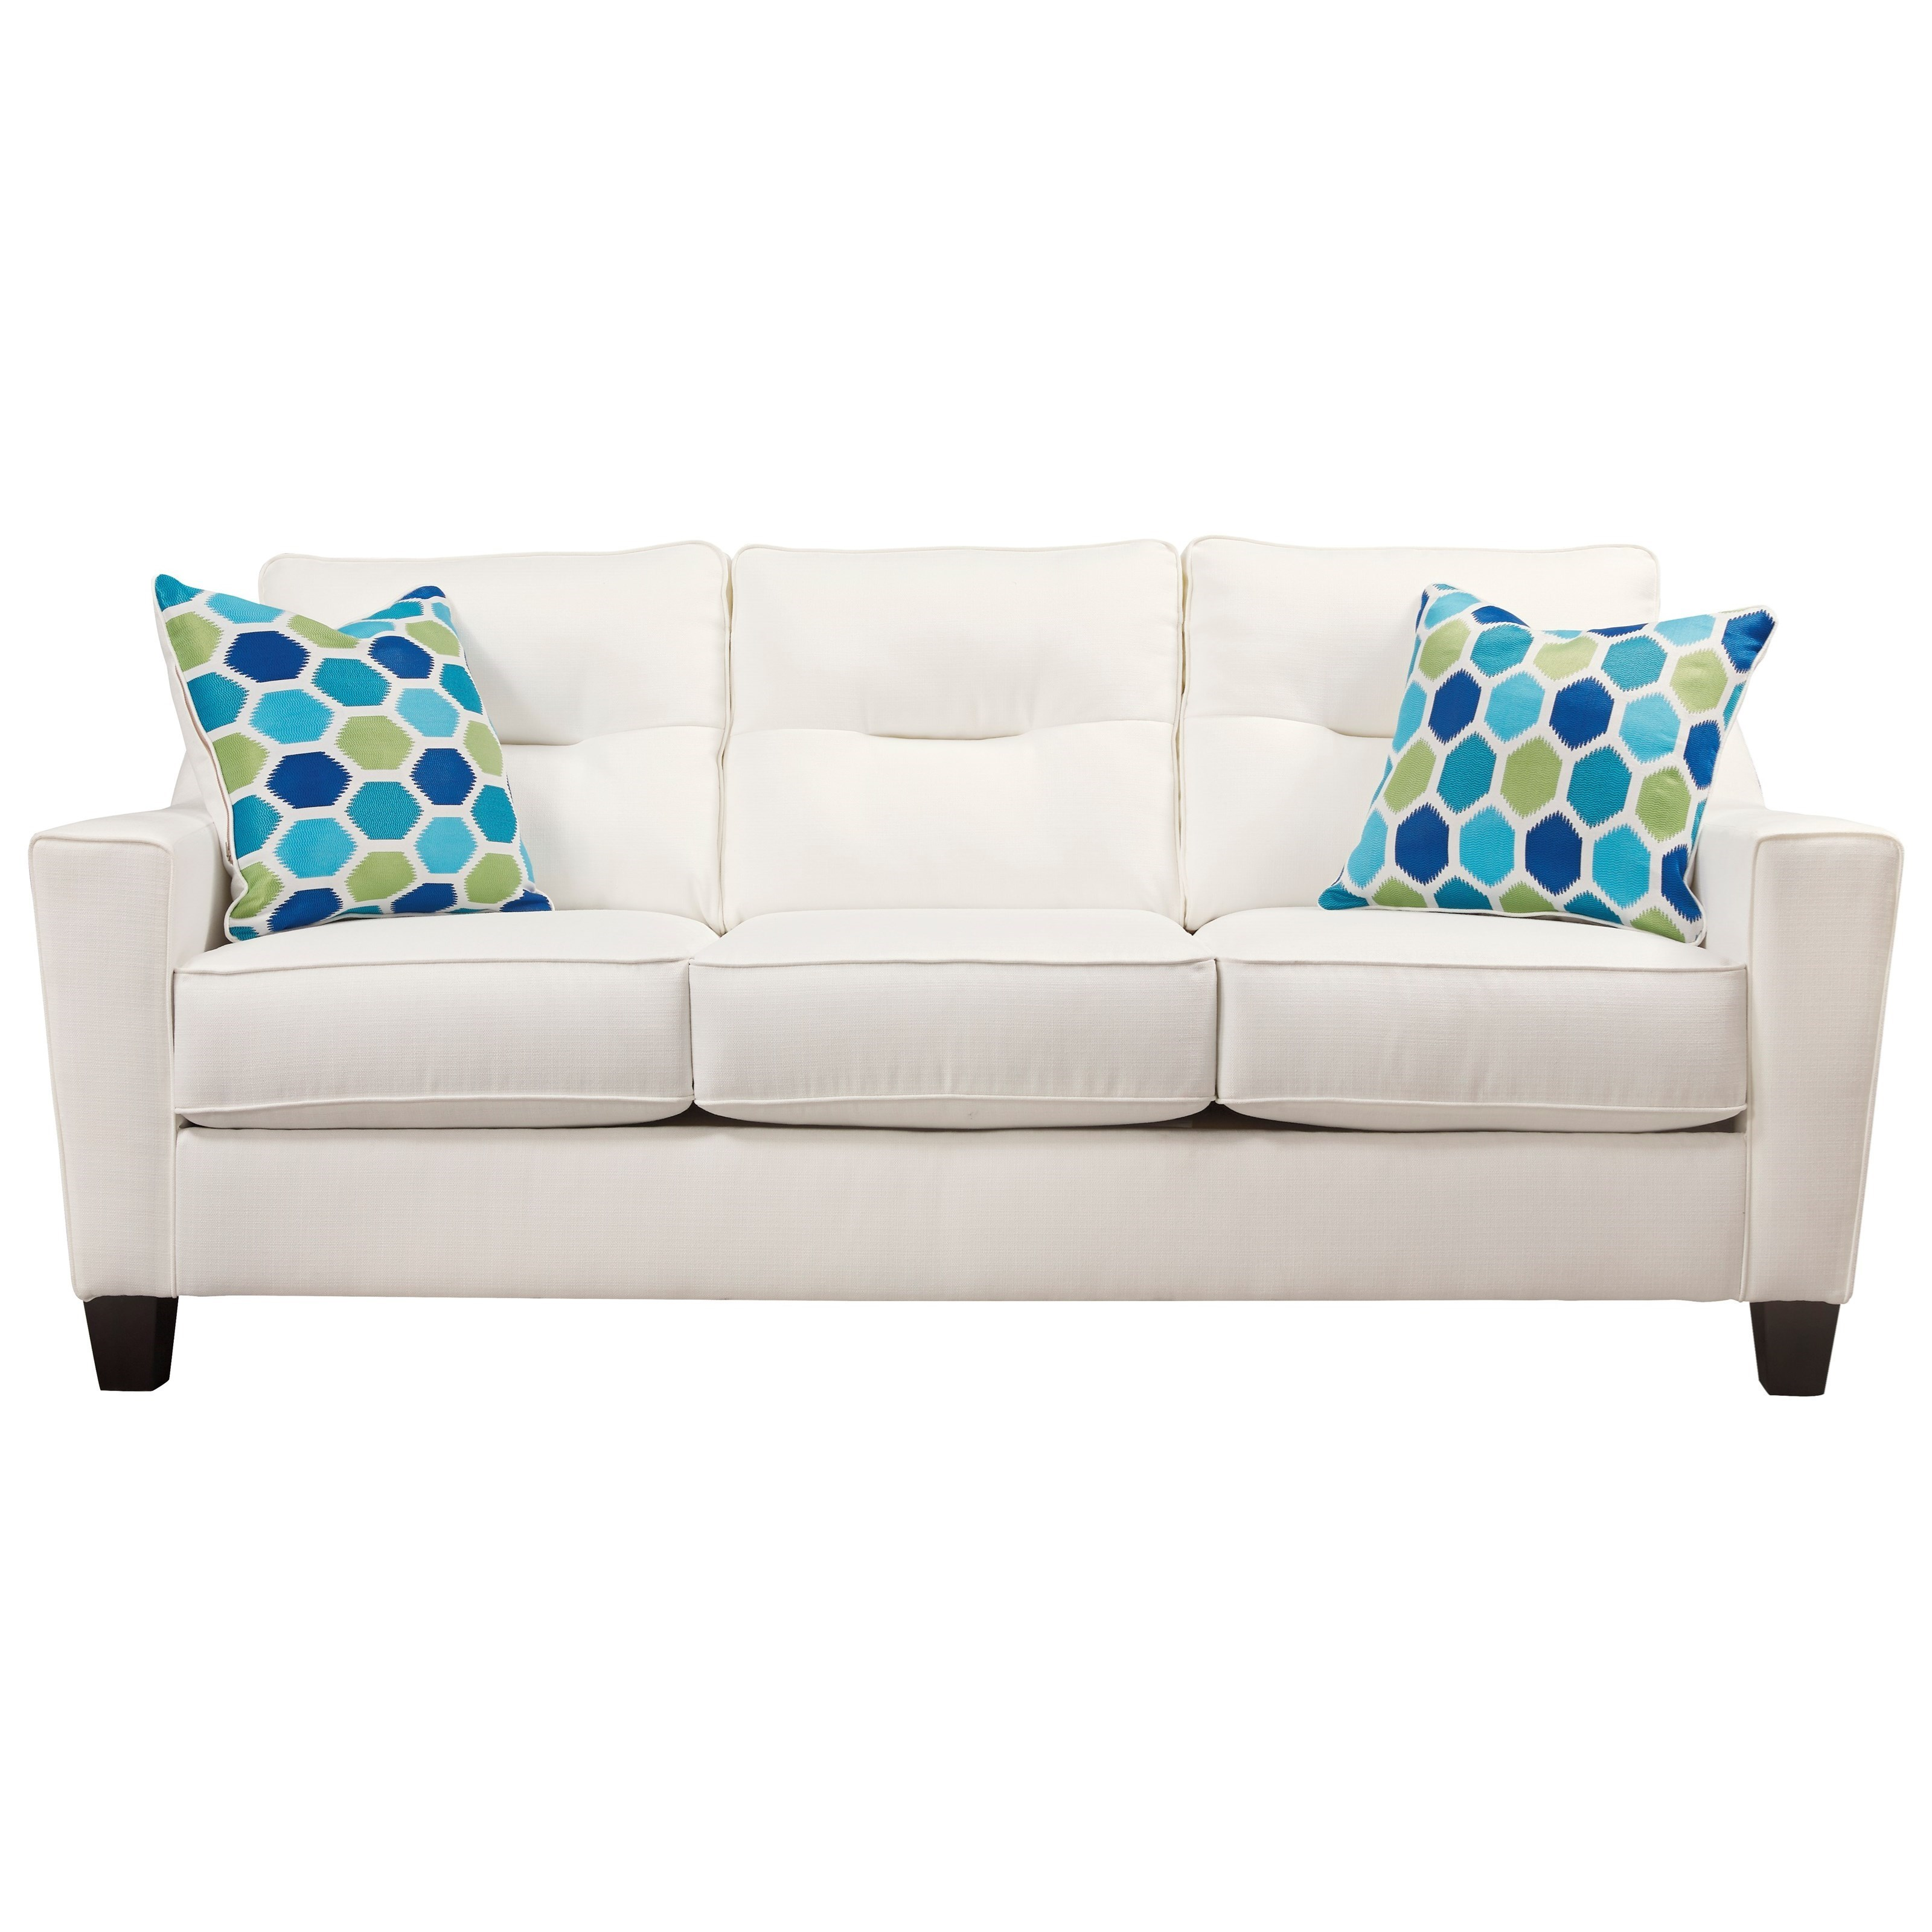 Benchcraft Forsan Nuvella Contemporary Sofa In Performance Fabric    Miskelly Furniture   Sofas